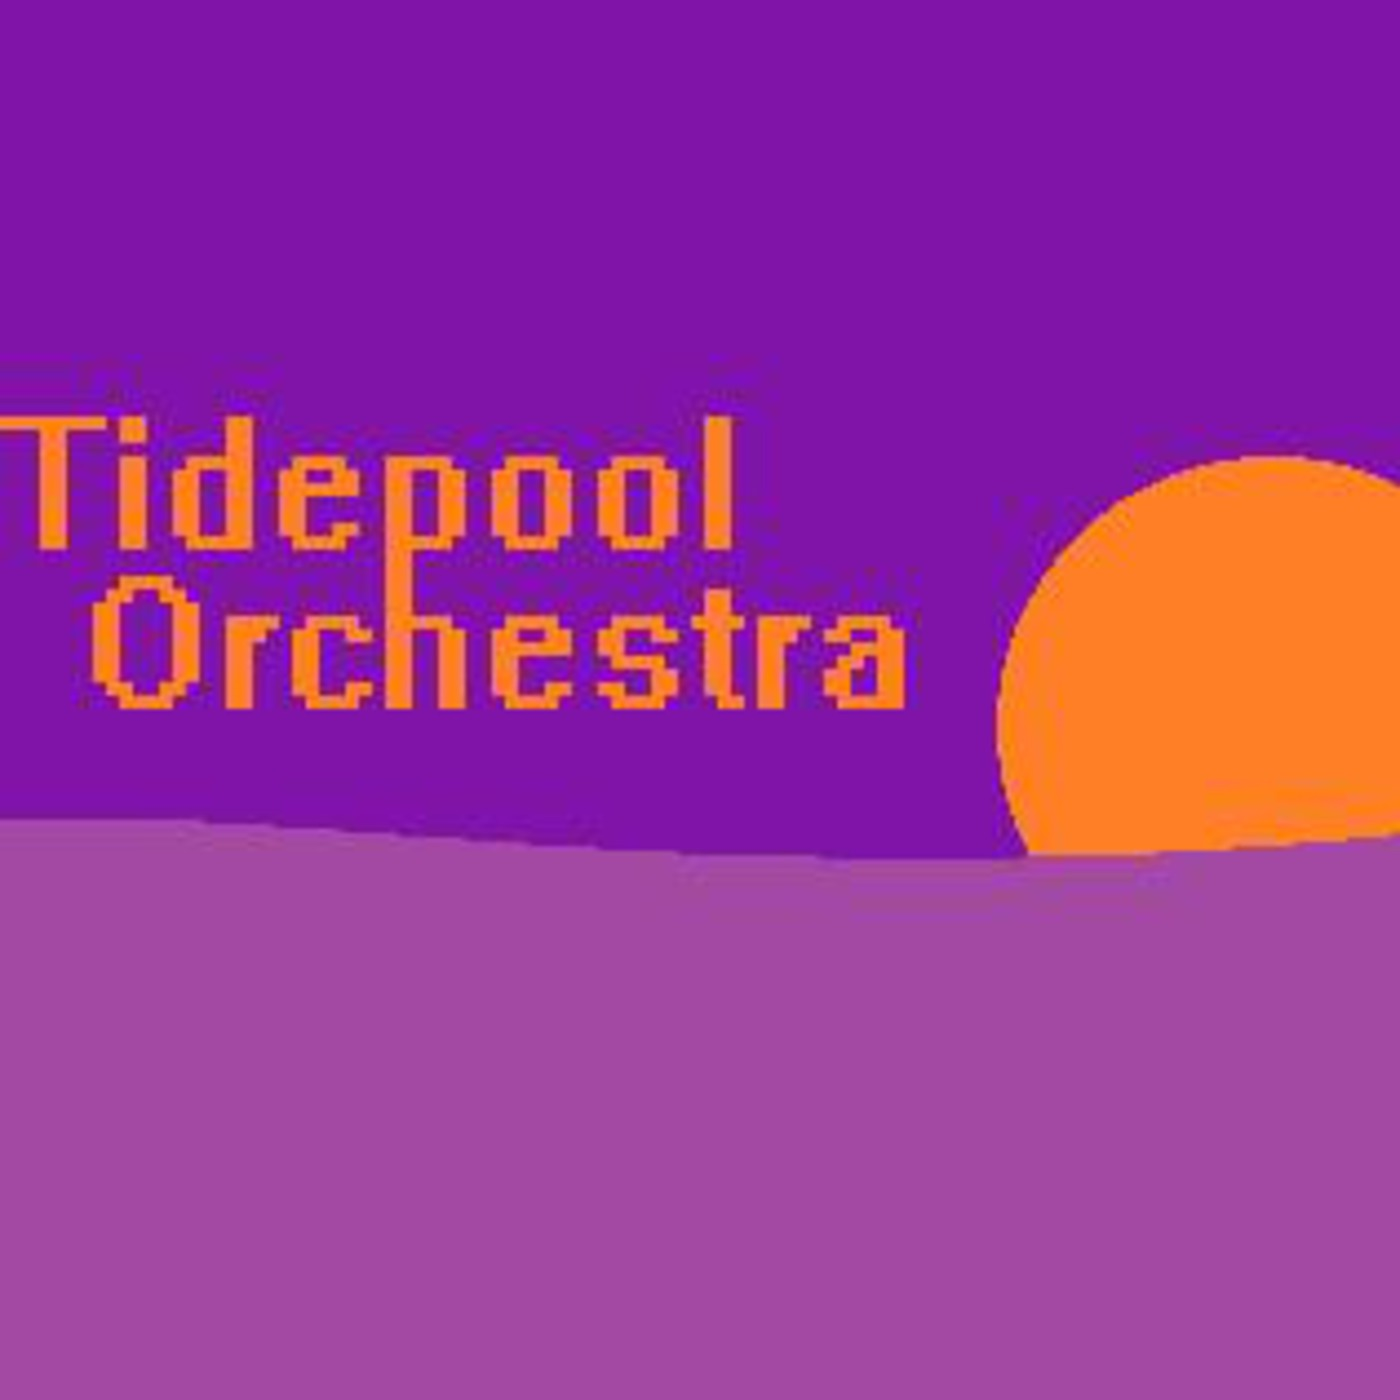 Tidepool Orchestra